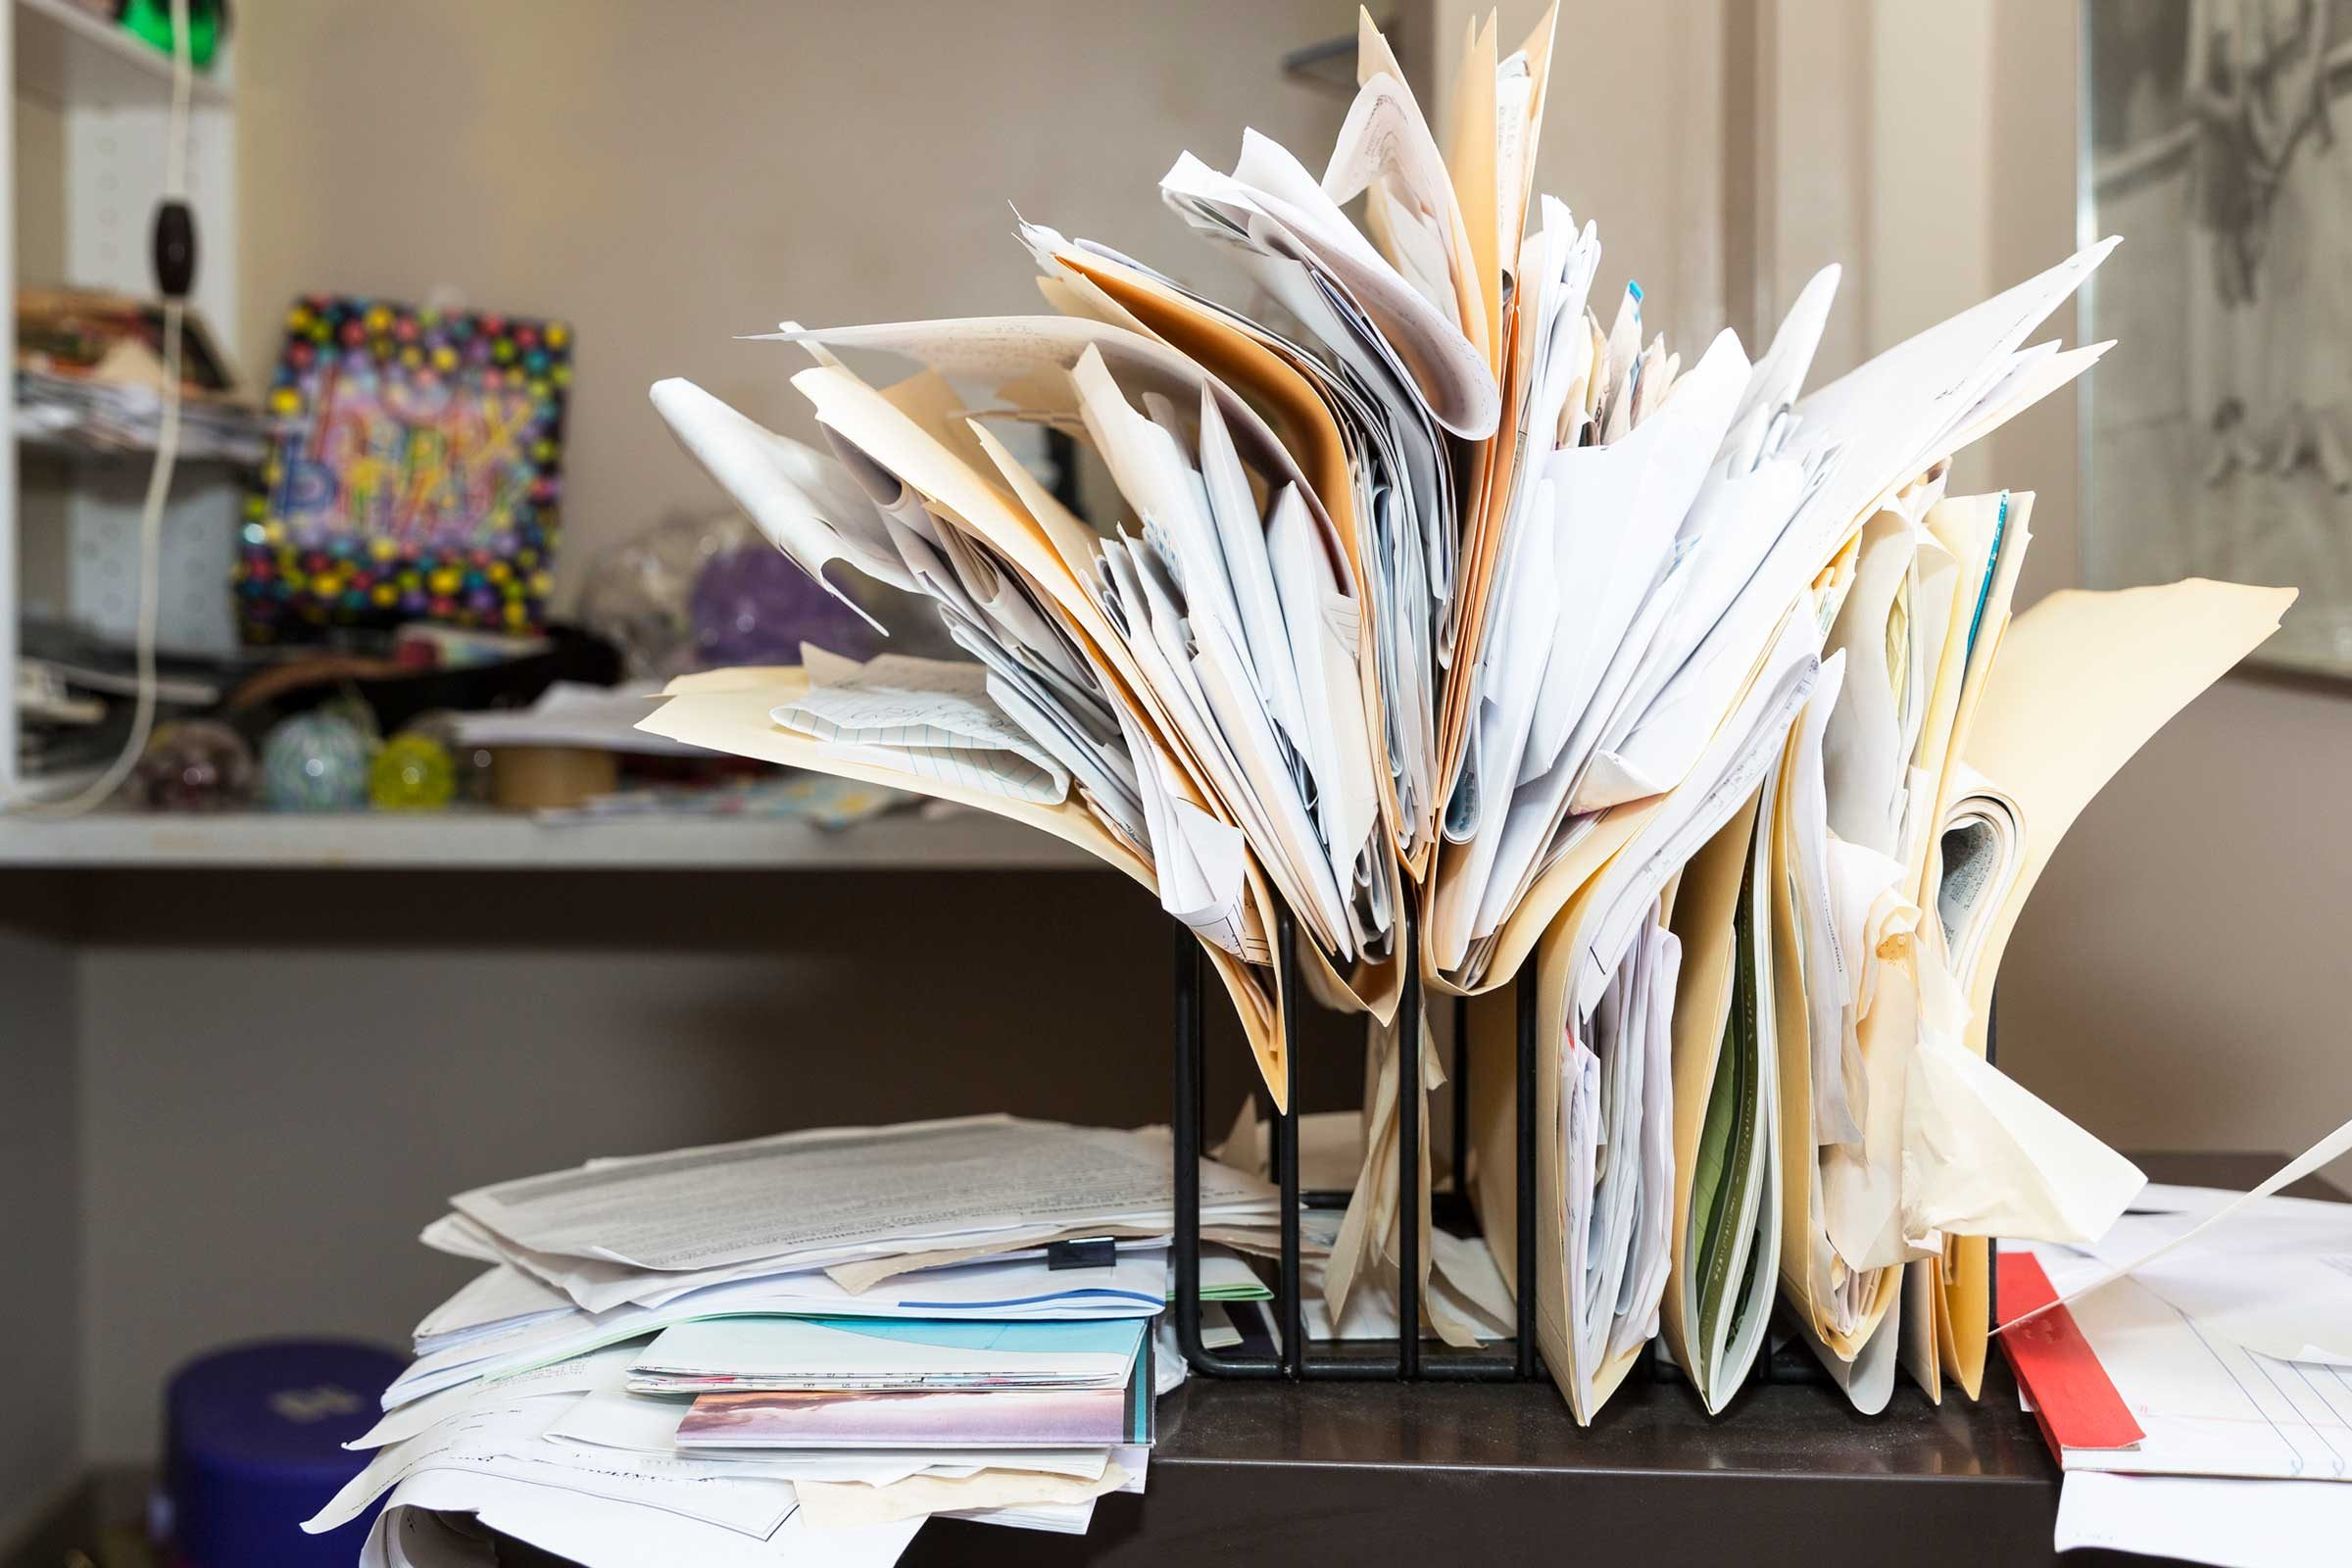 Messy people have their own special organization system